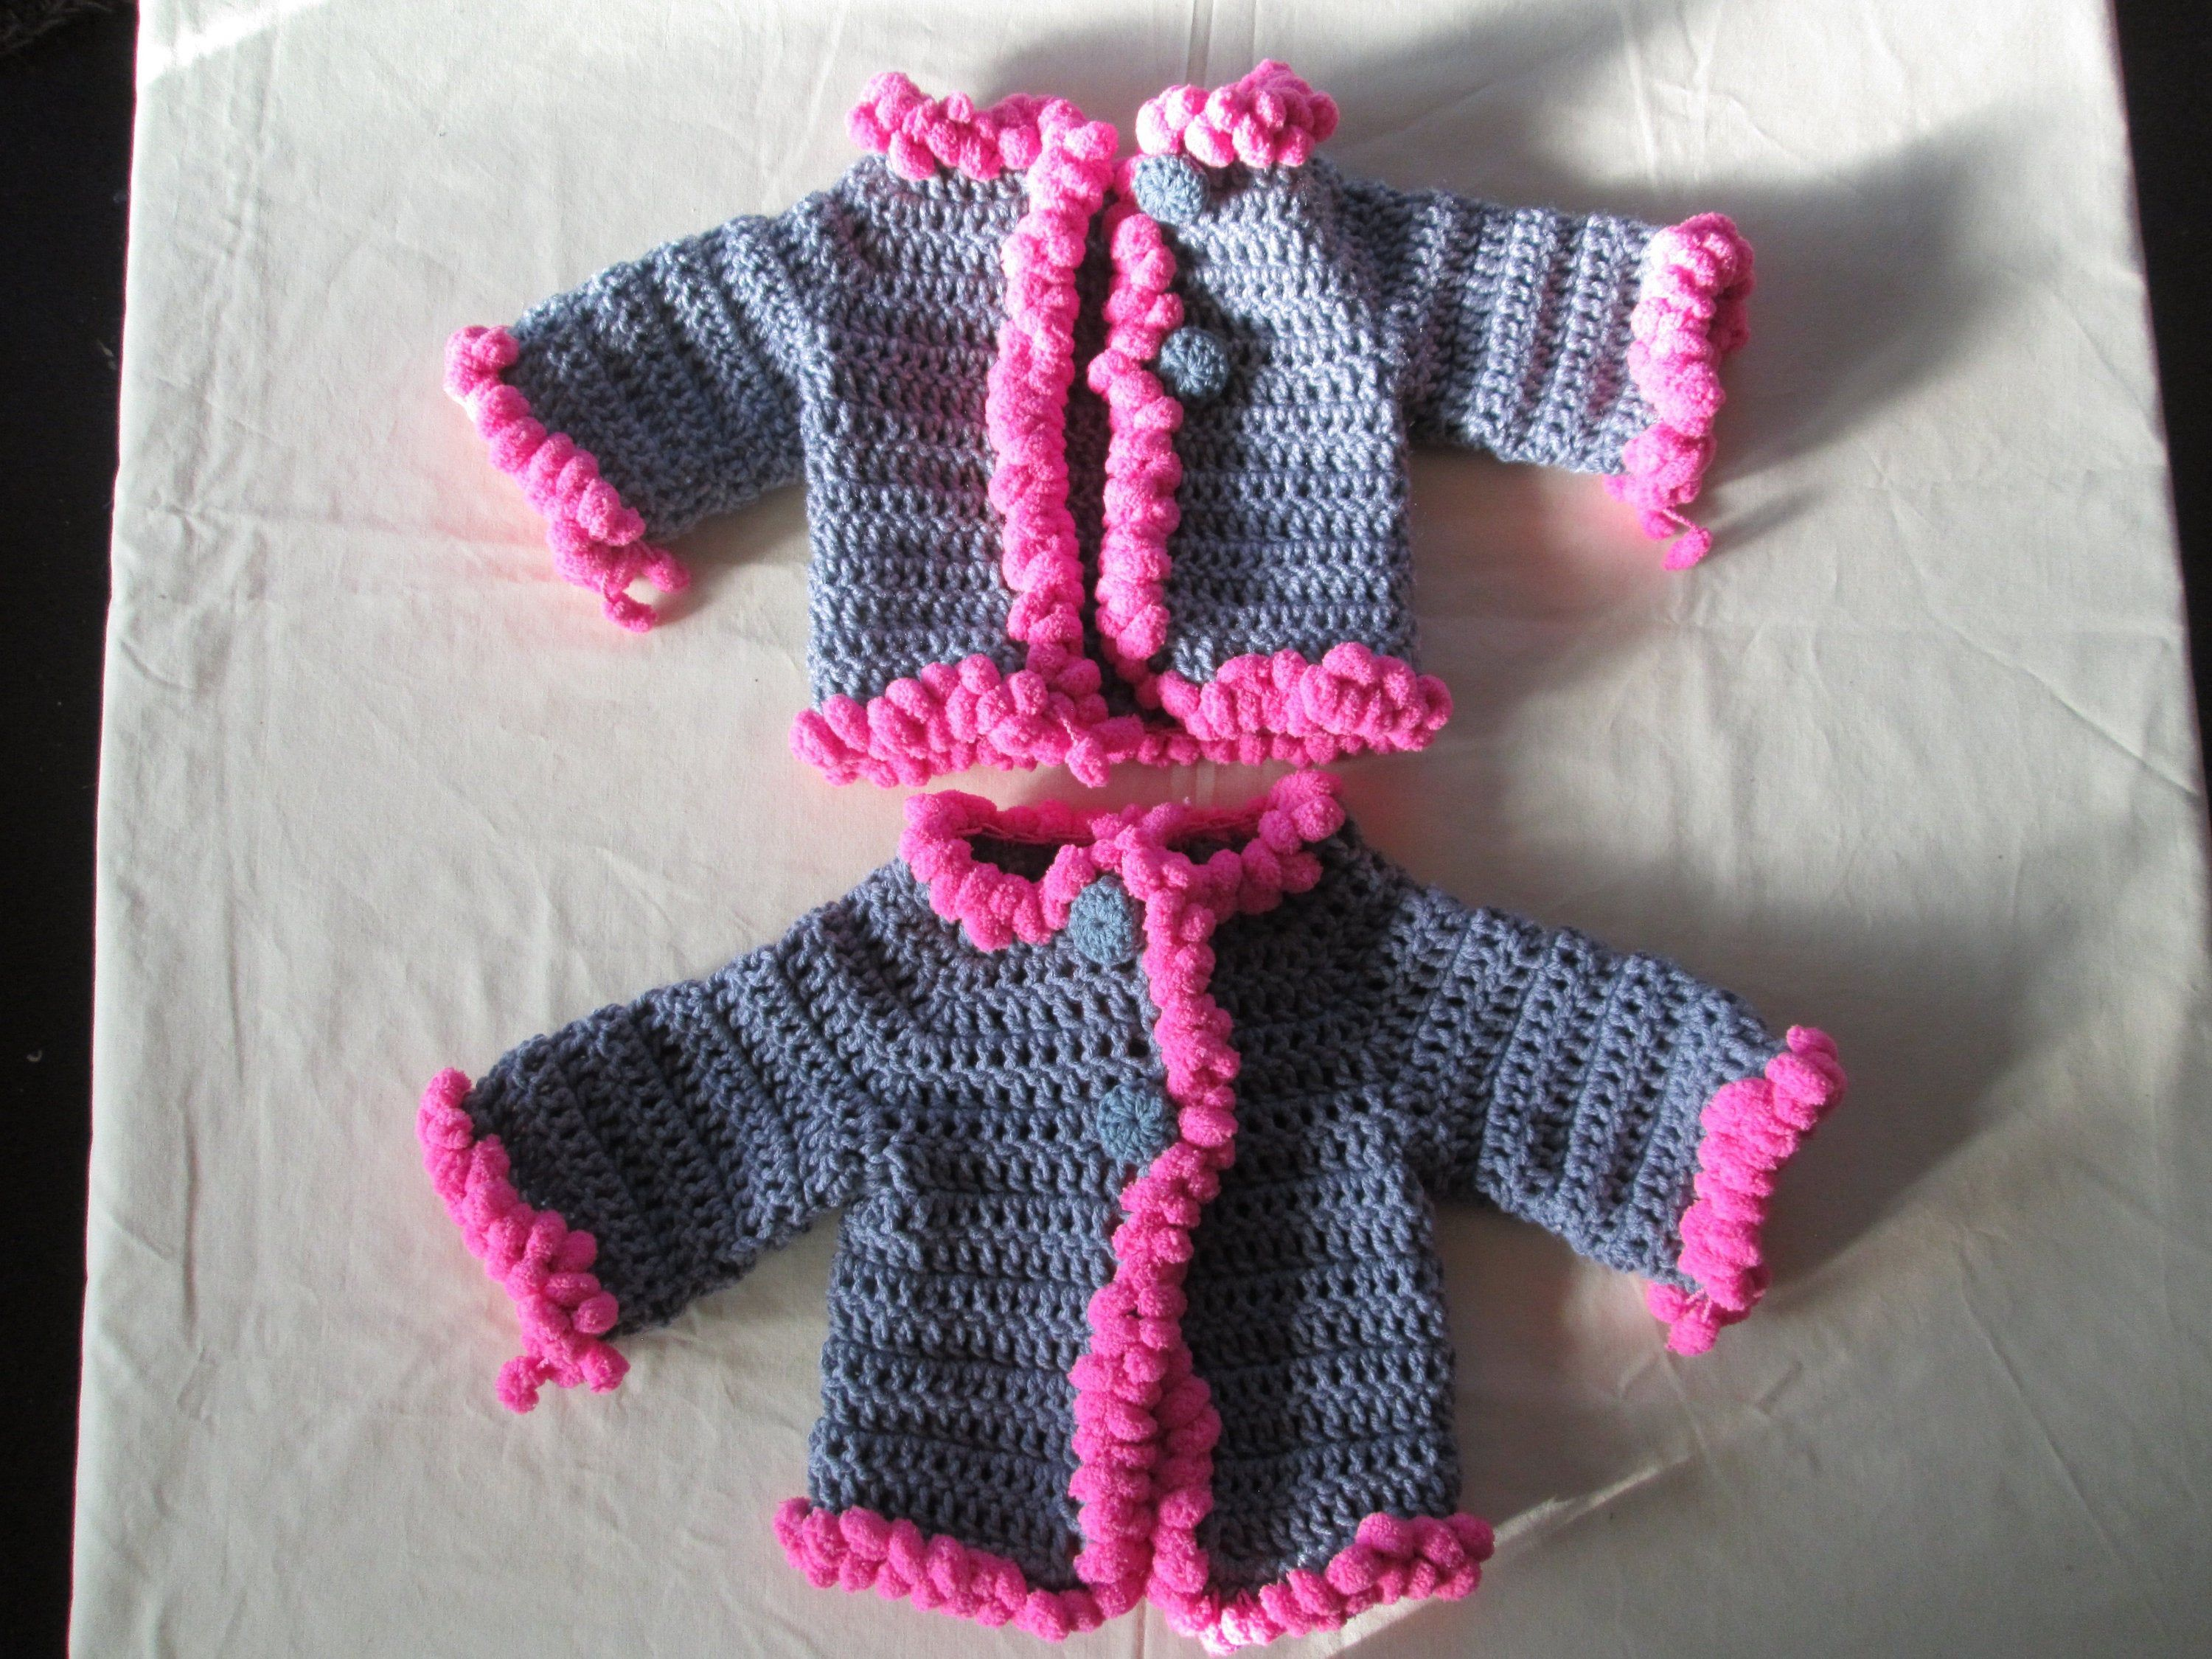 Preemie 3 Month Baby Girl Blue Sweater 6 Months Baby Girl Blue and Greens Sweater Crocheted by SuzannesStitches Baby Girl Green Cardi